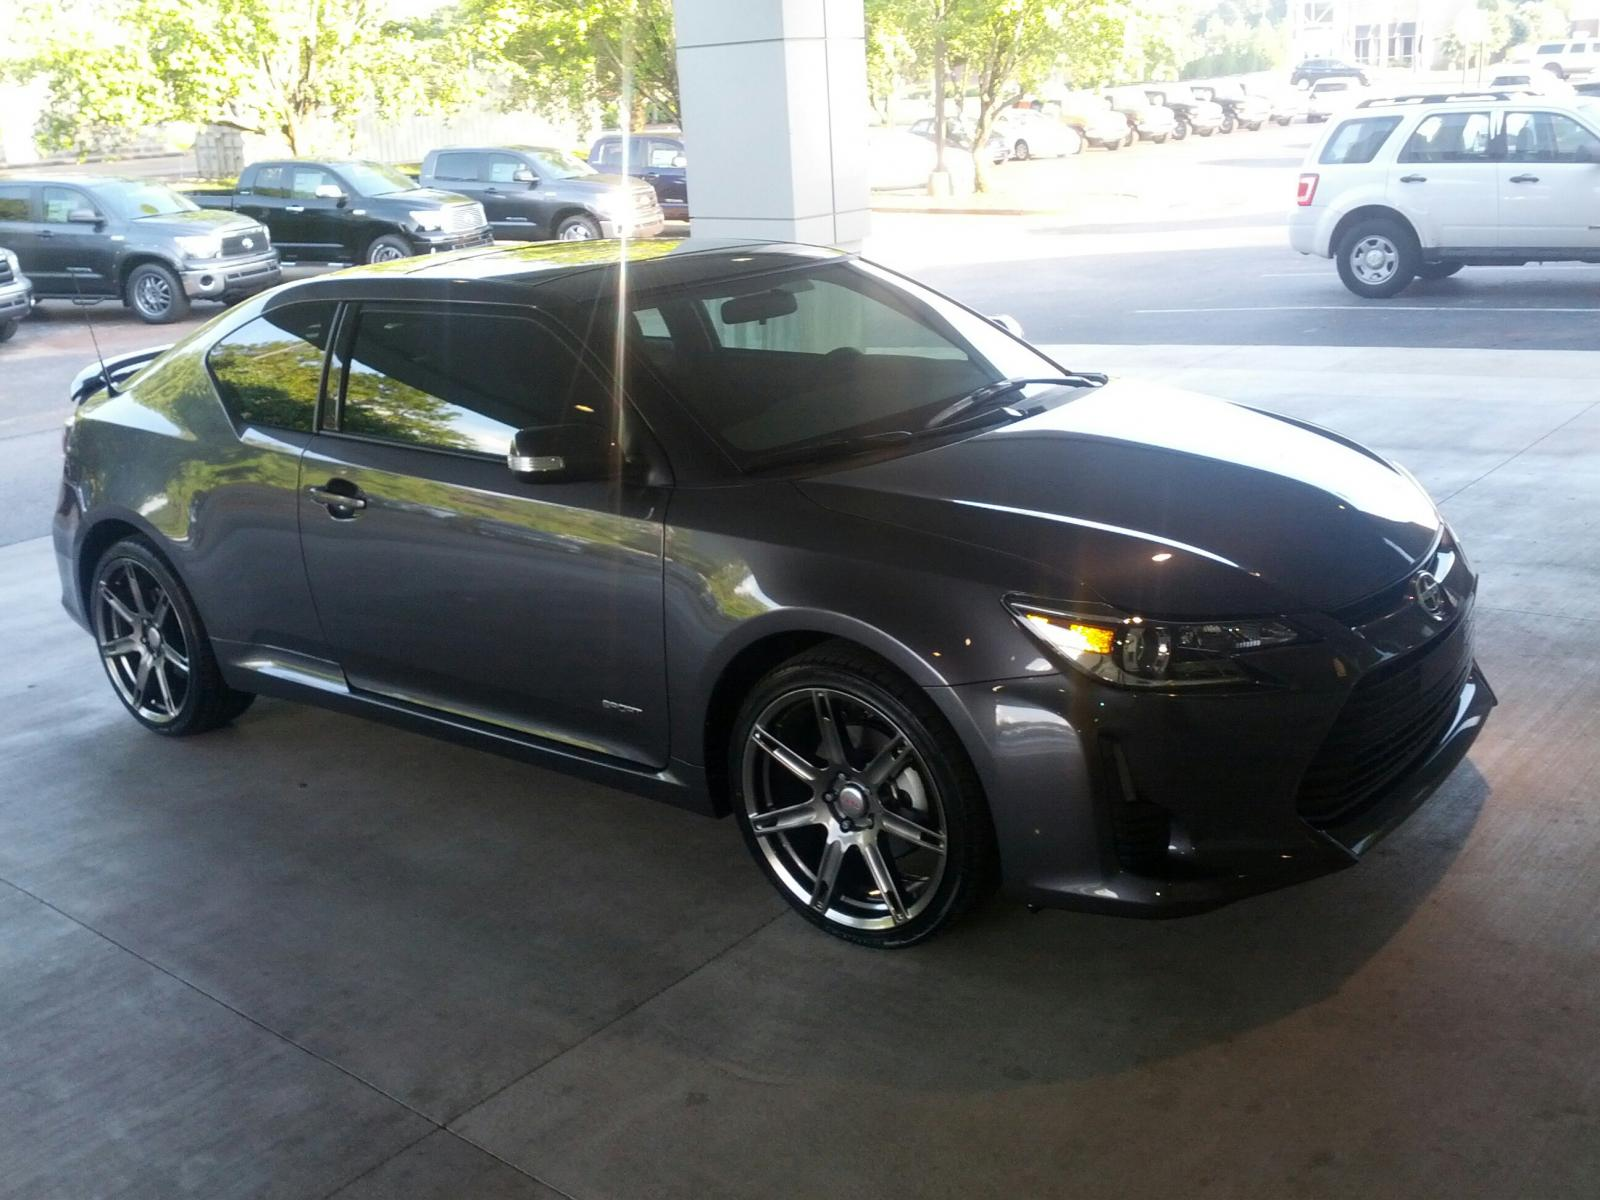 I need a 2014 Scion TC wiring Diagram | Scion tC Forums | 2014 Scion Tc Stereo Wiring Diagram |  | Scion tC Forums